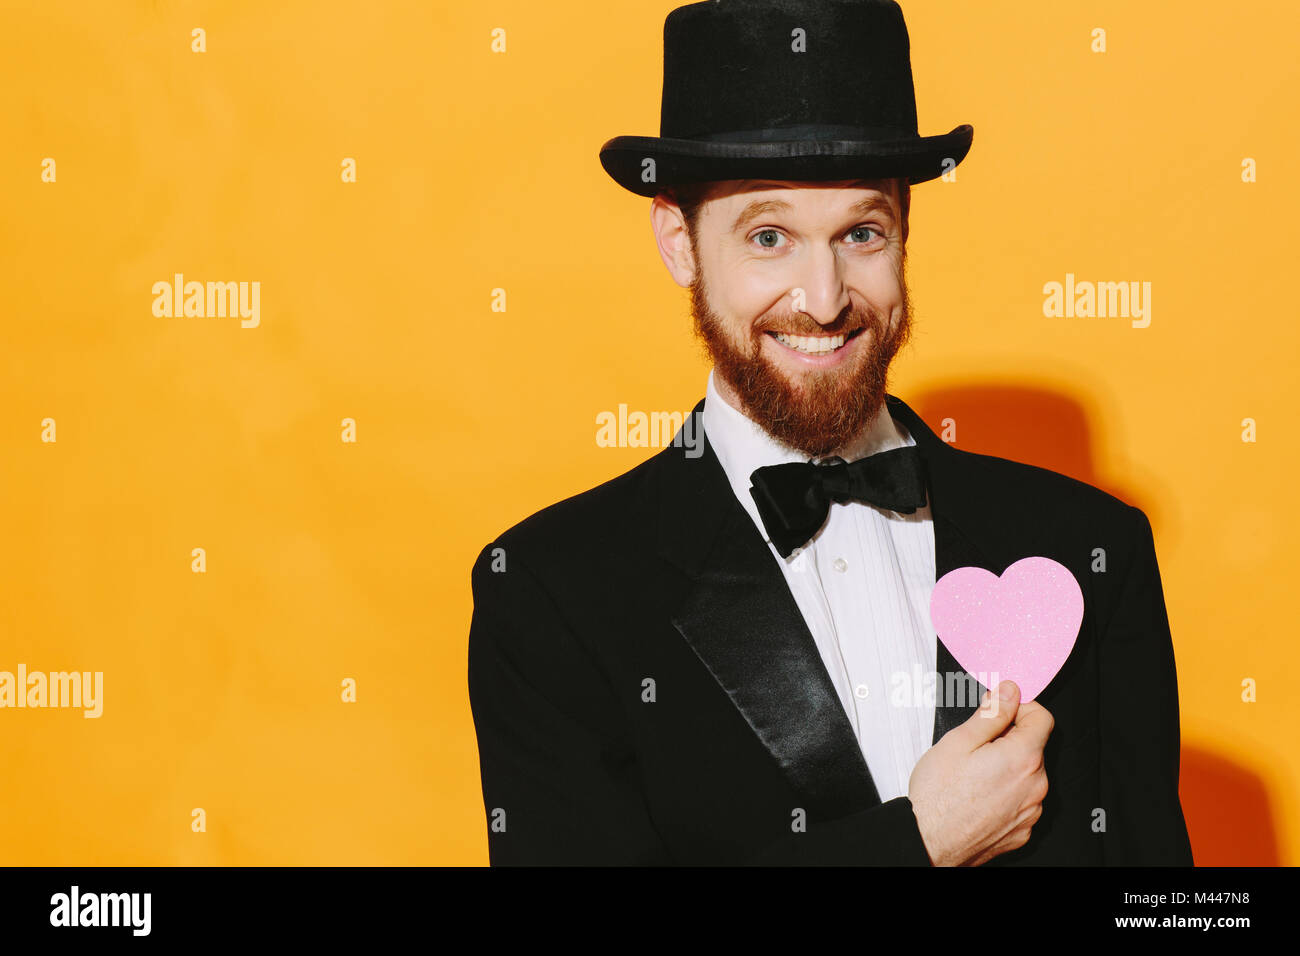 Hopeful smiling man with top hat holding a pink heart, be my valentine - Stock Image